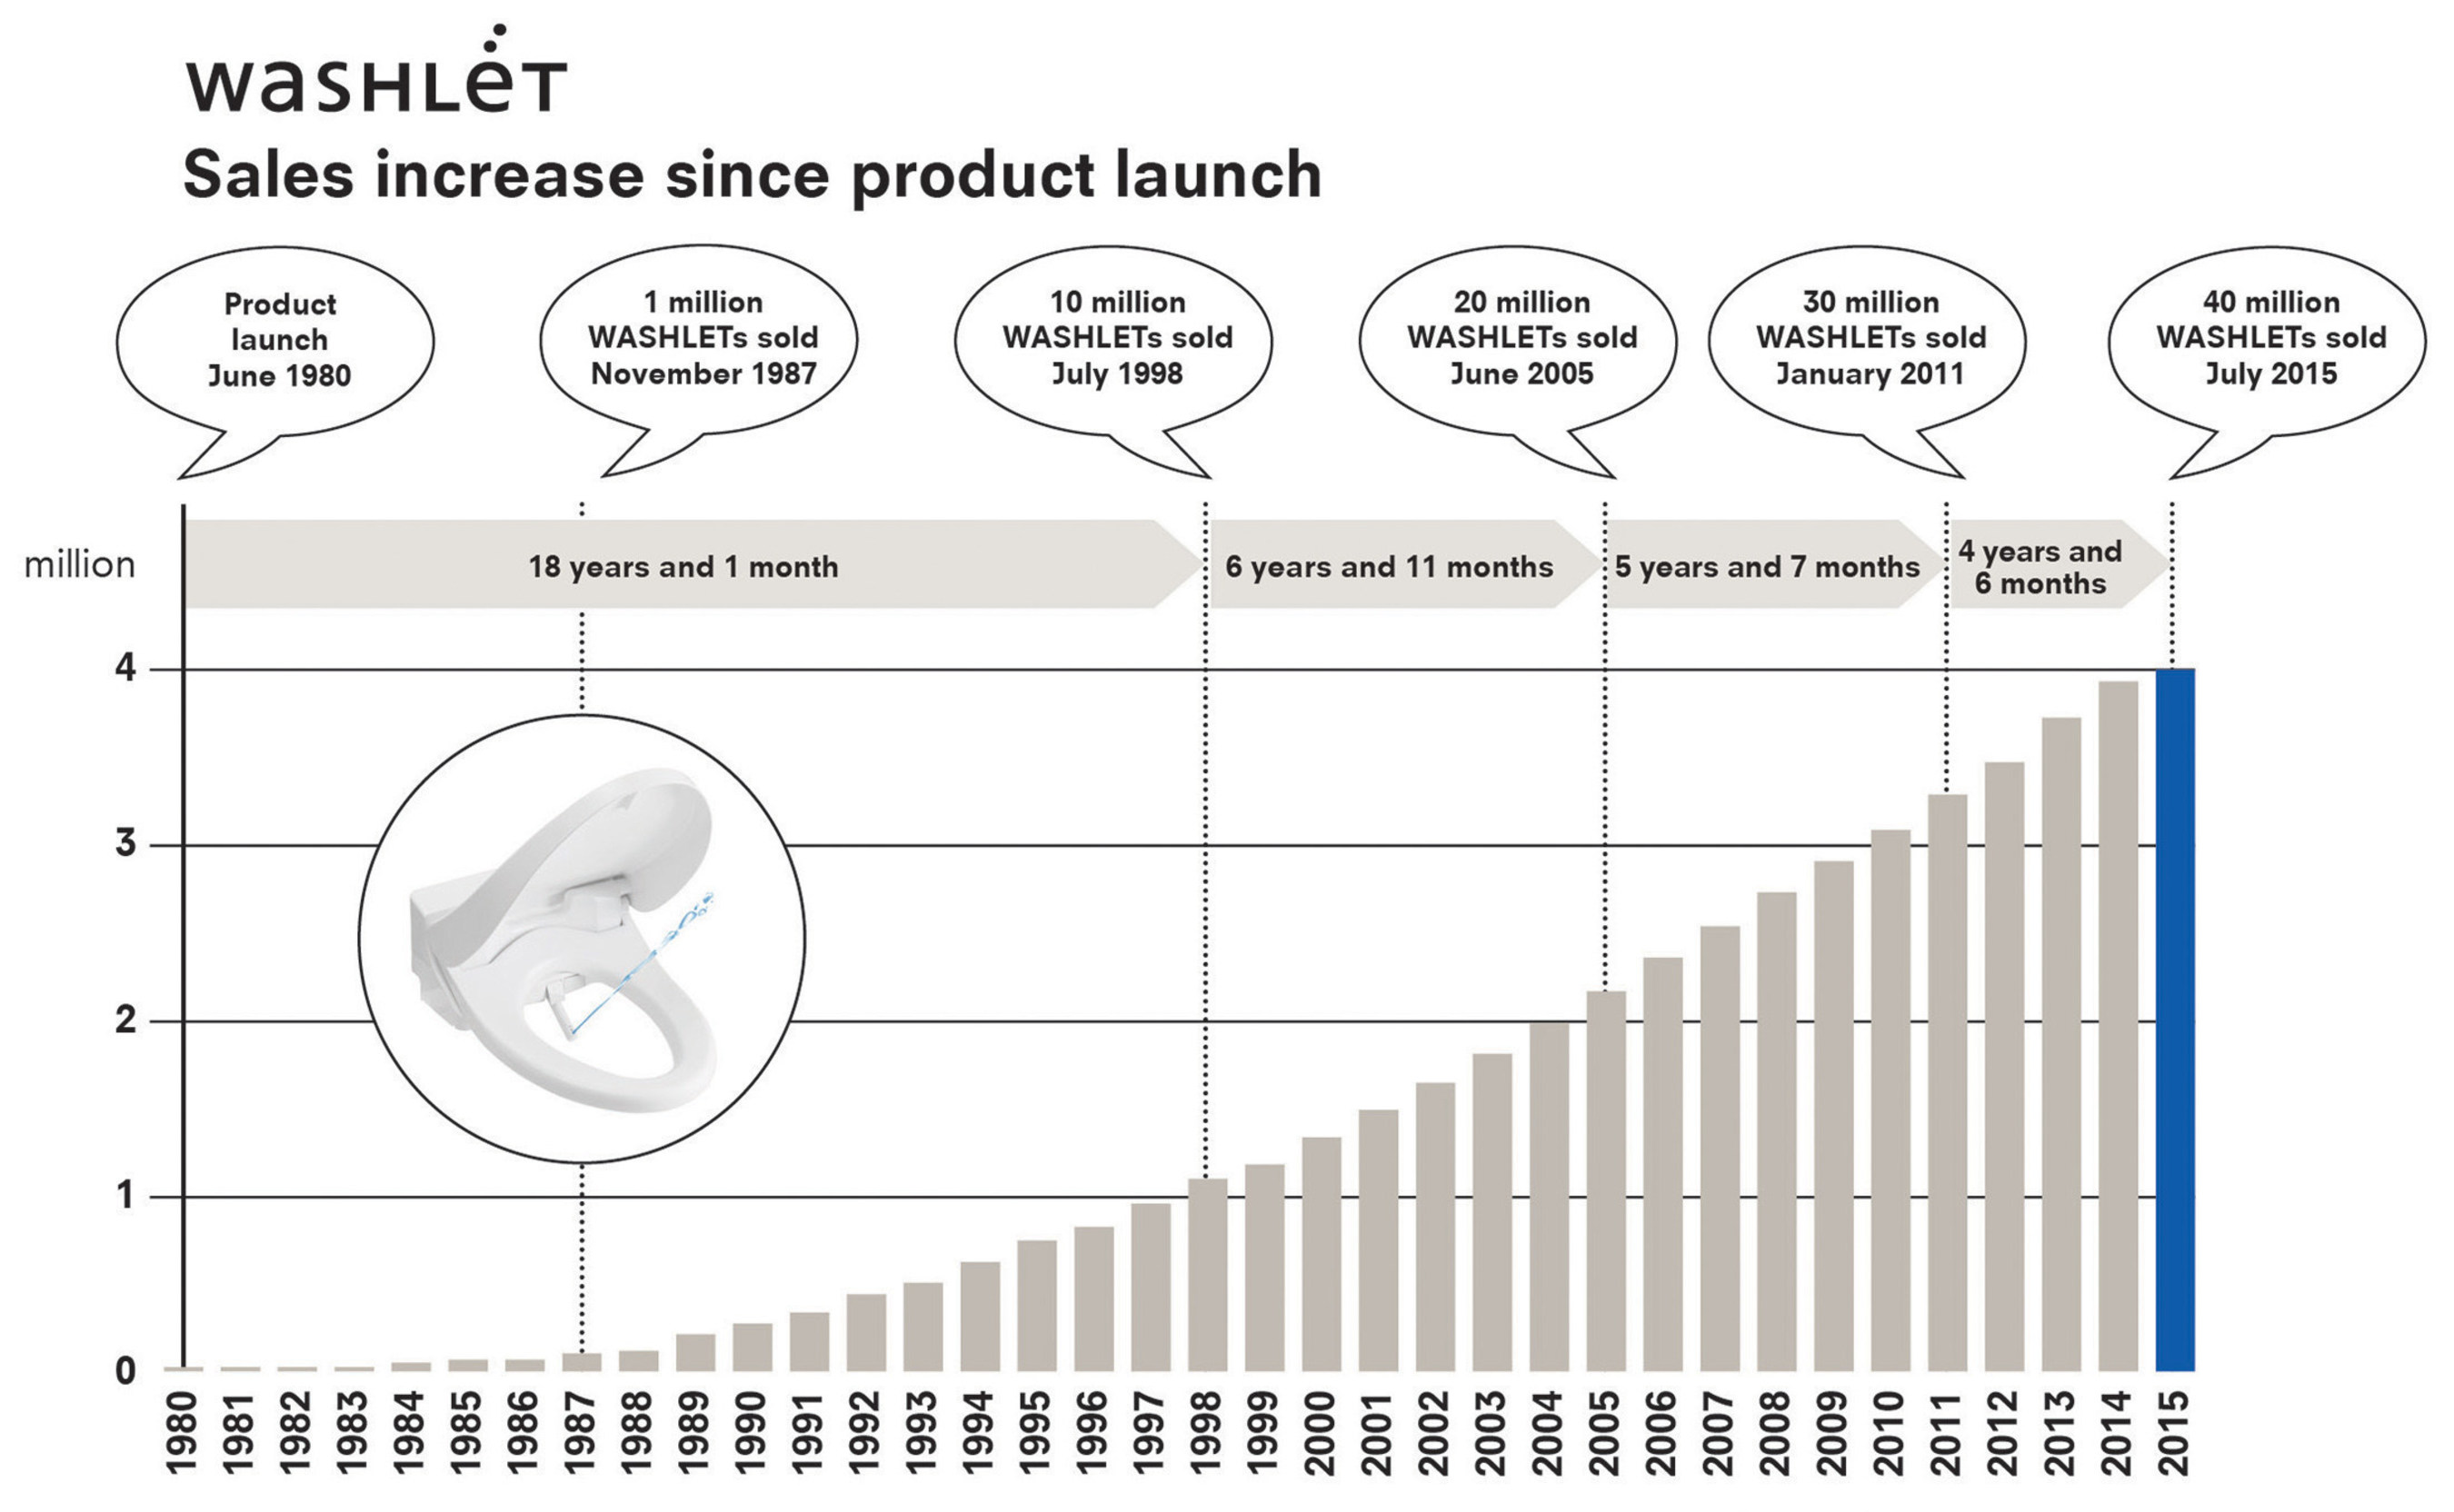 TOTO has sold more than 40 million Washlets worldwide since 1980, exemplifying the company's position as the plumbing industry's leader in technological innovation. Today, Washlets are found in 77.5 percent of Japanese homes and demand continues to grow dramatically in North America. If this trend continues, Washlets may become standard here in the next decade.